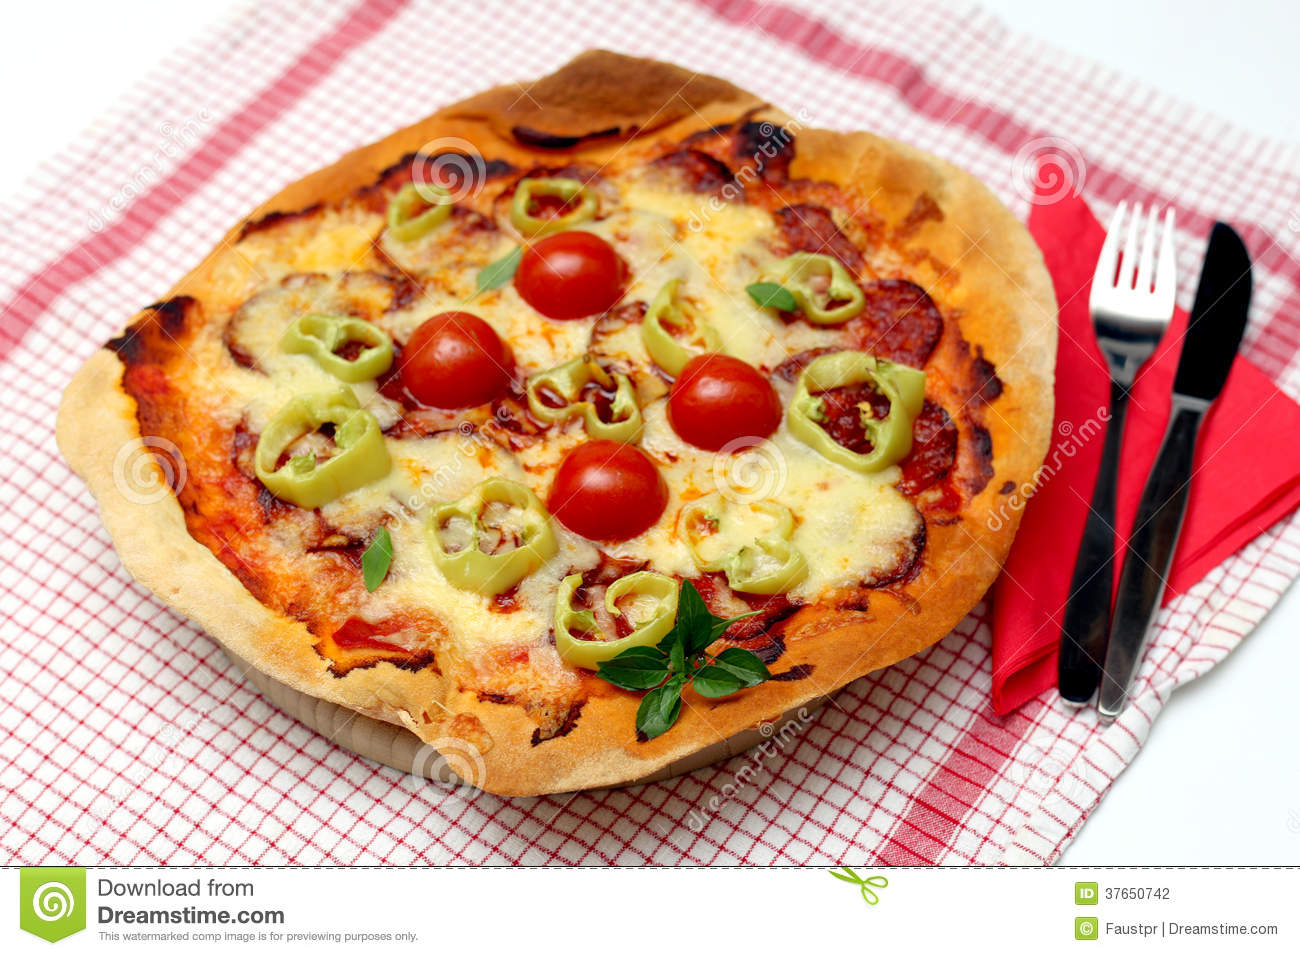 how to make cheese and tomato pizza